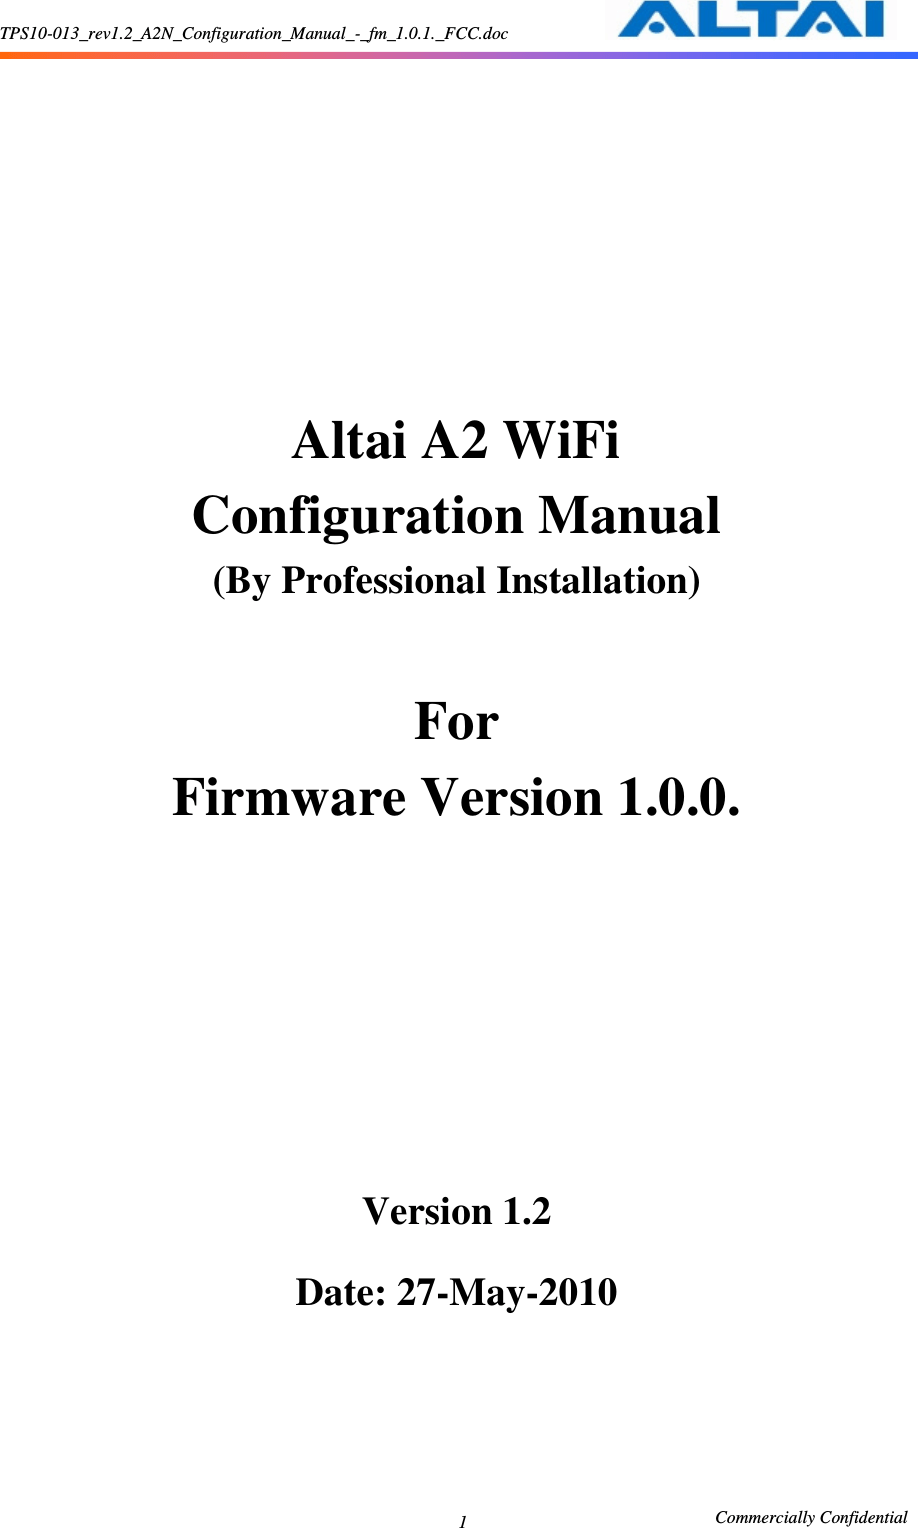 Altai Technologies AP5822A A2 WiFi Access Point/Bridge